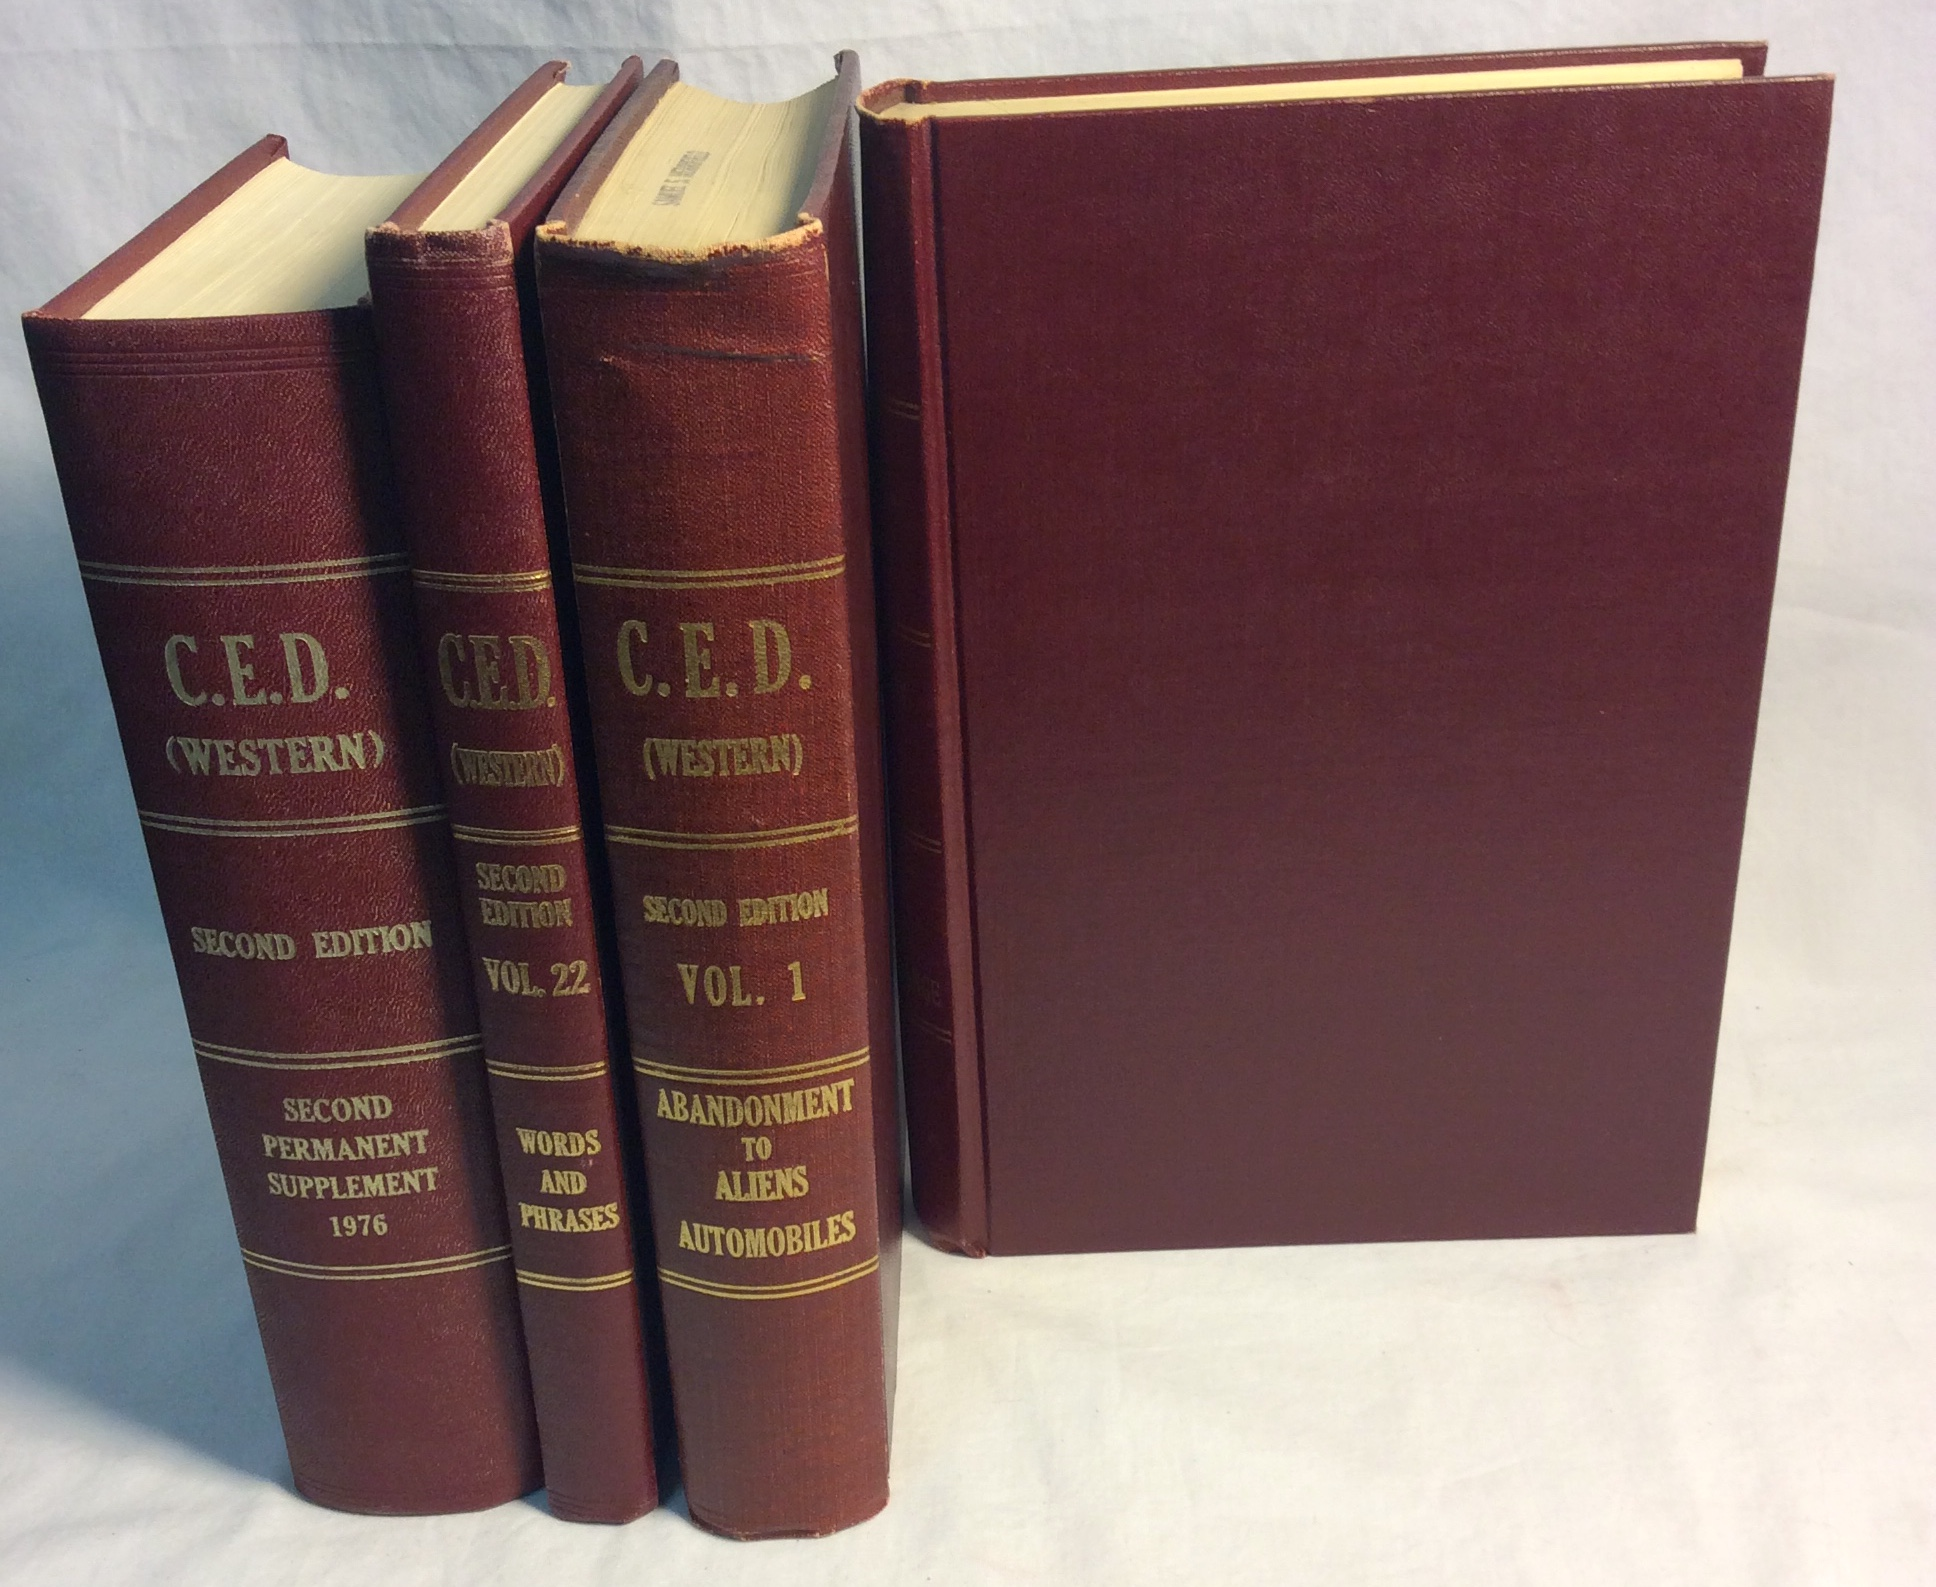 Set of red hardcover C.E.D. books